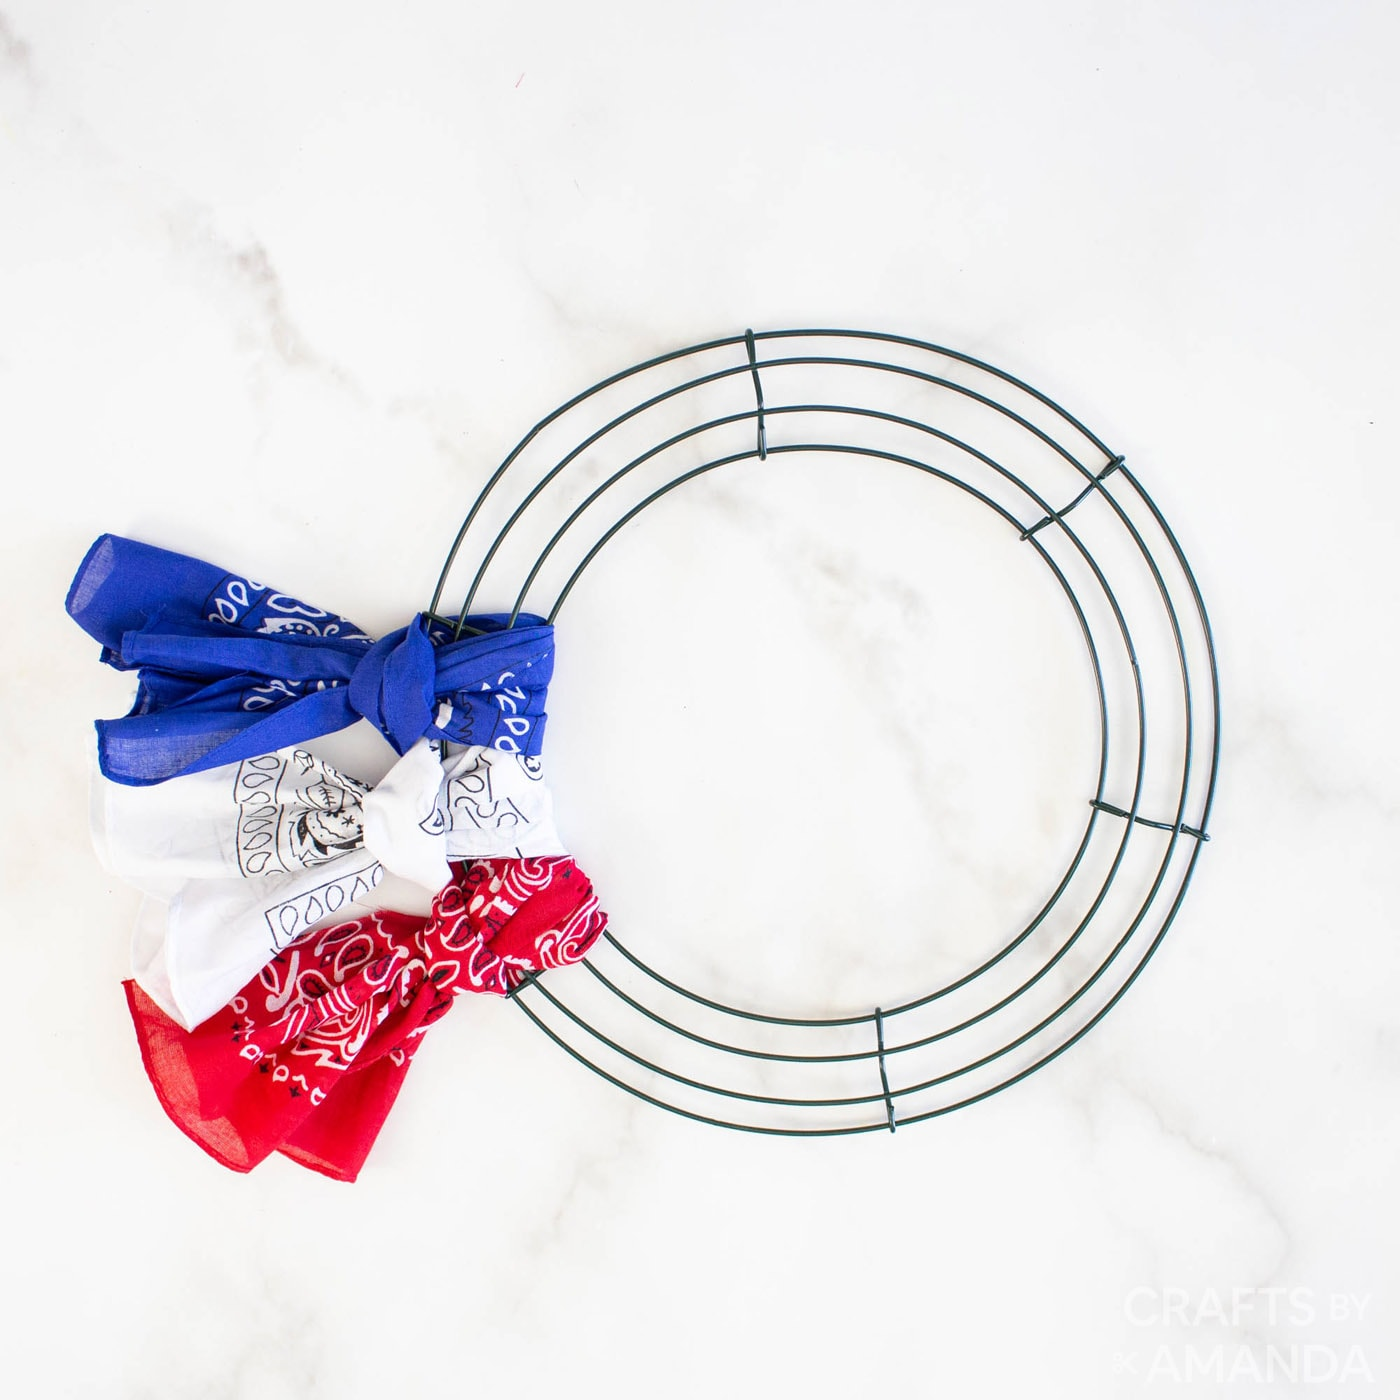 red white and blue bandanas tied to a wreath form